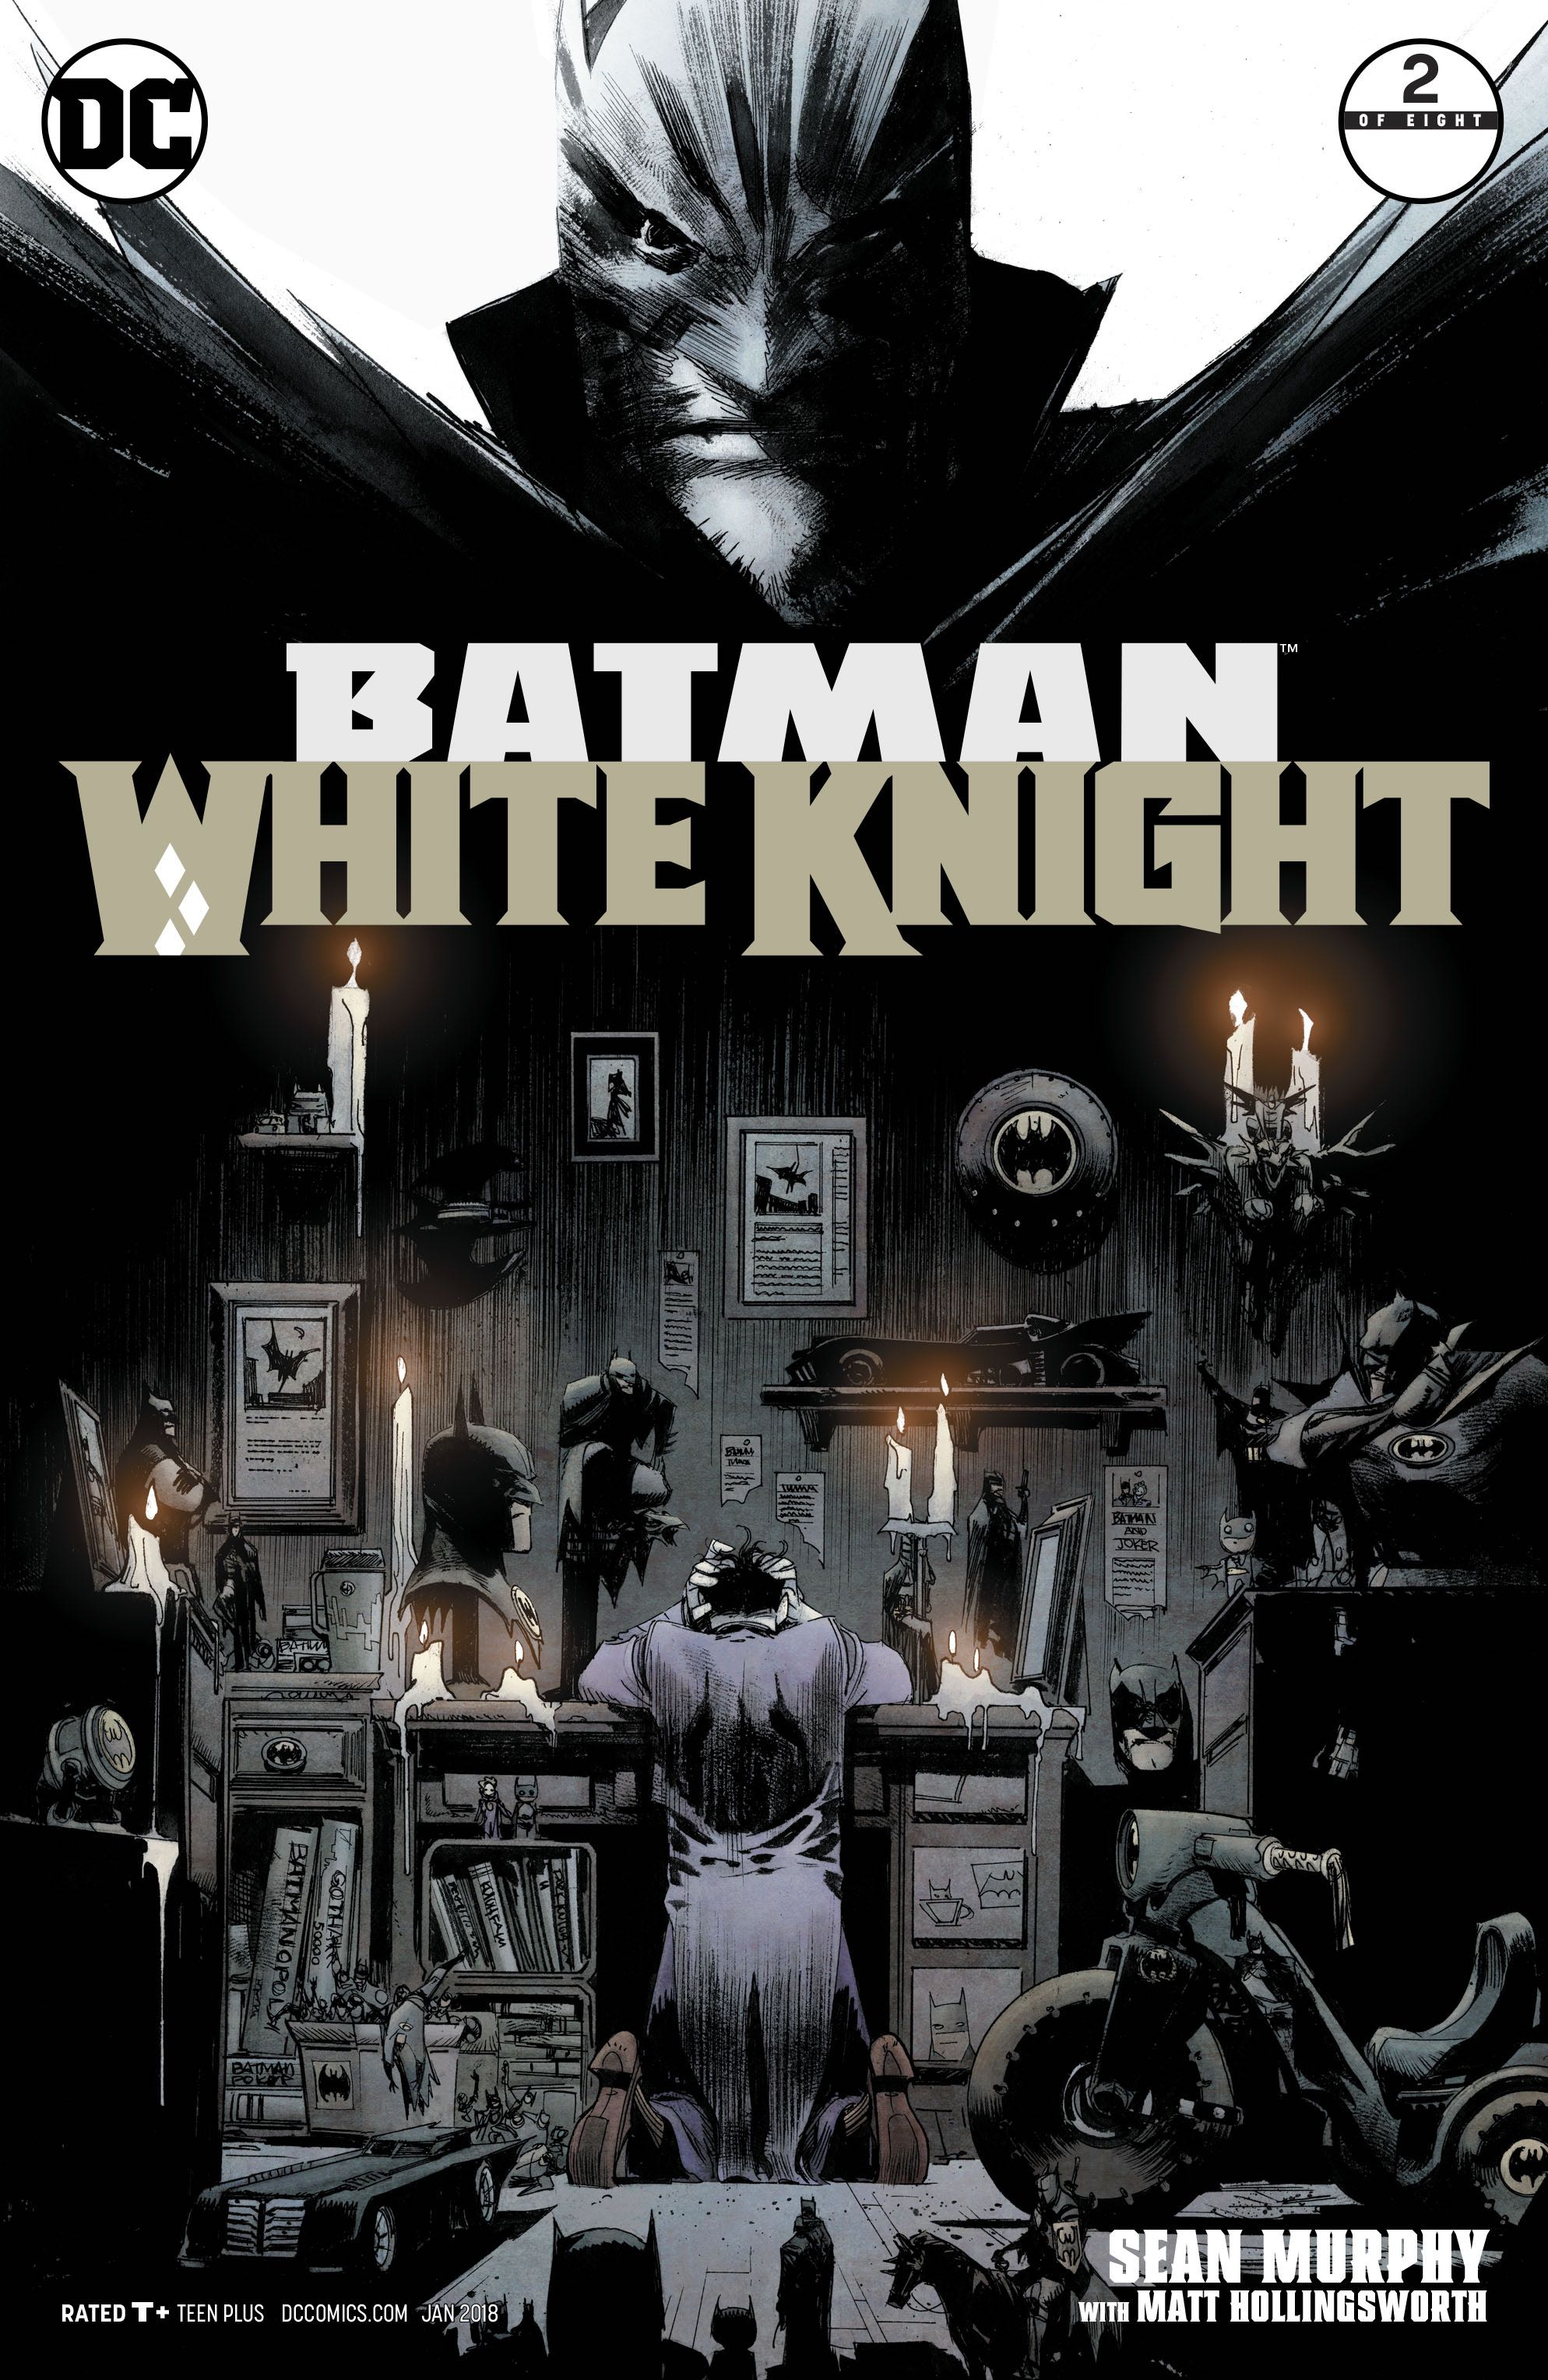 Episode 9 Cover of the Week! - (DC) Batman White Knight #2Cover by Sean MurphyWritten by Sean MurphyIllustrated by Sean MurphyDid the Content Match the Drapes? - YES!